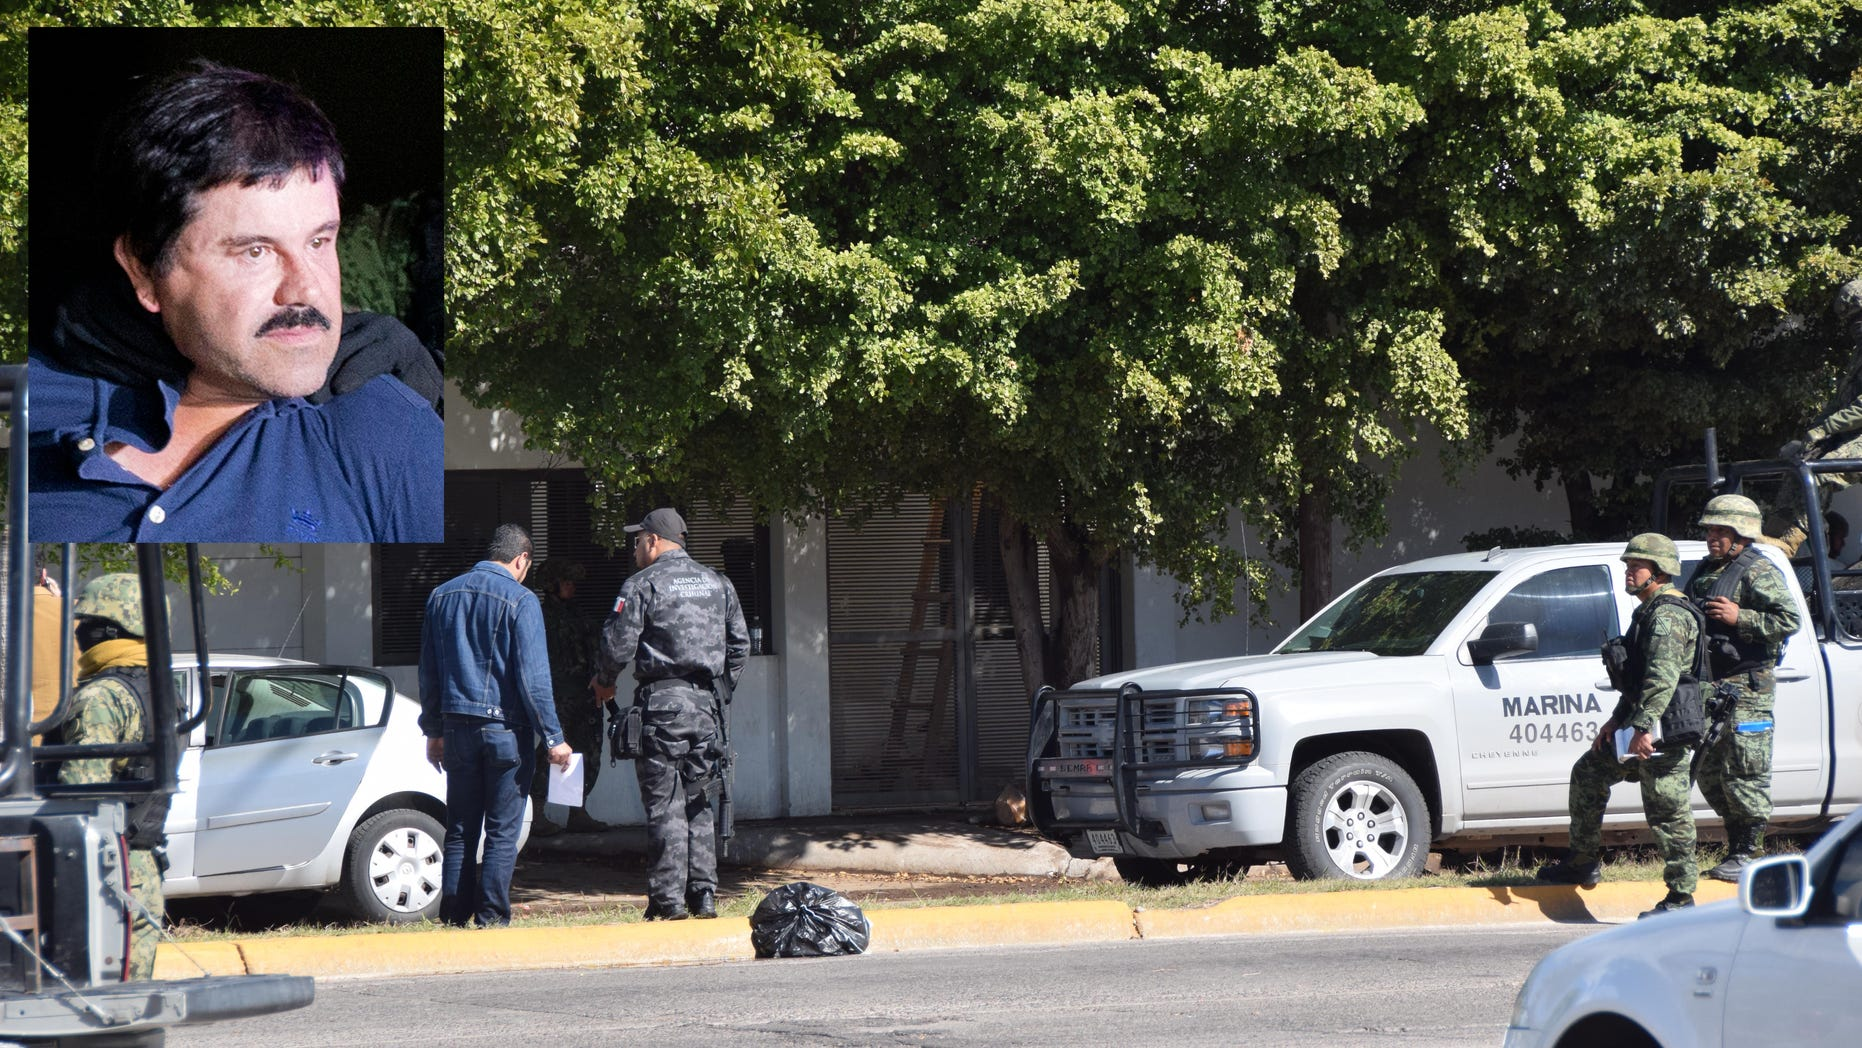 """Mexican navy marines and other law enforcement officers inspect a home after the recapture of Mexico's most wanted drug lord, Joaquin """"El Chapo"""" Guzman in the city of Los Mochis, Mexico, Friday, Jan. 8, 2016. The worldâs most-wanted drug lord was captured for a third time, as Mexican marines staged heavily-armed raids that caught Guzman six months after he escaped from a maximum security prison. (Libertad Montoya via AP/EL DEBATE)"""